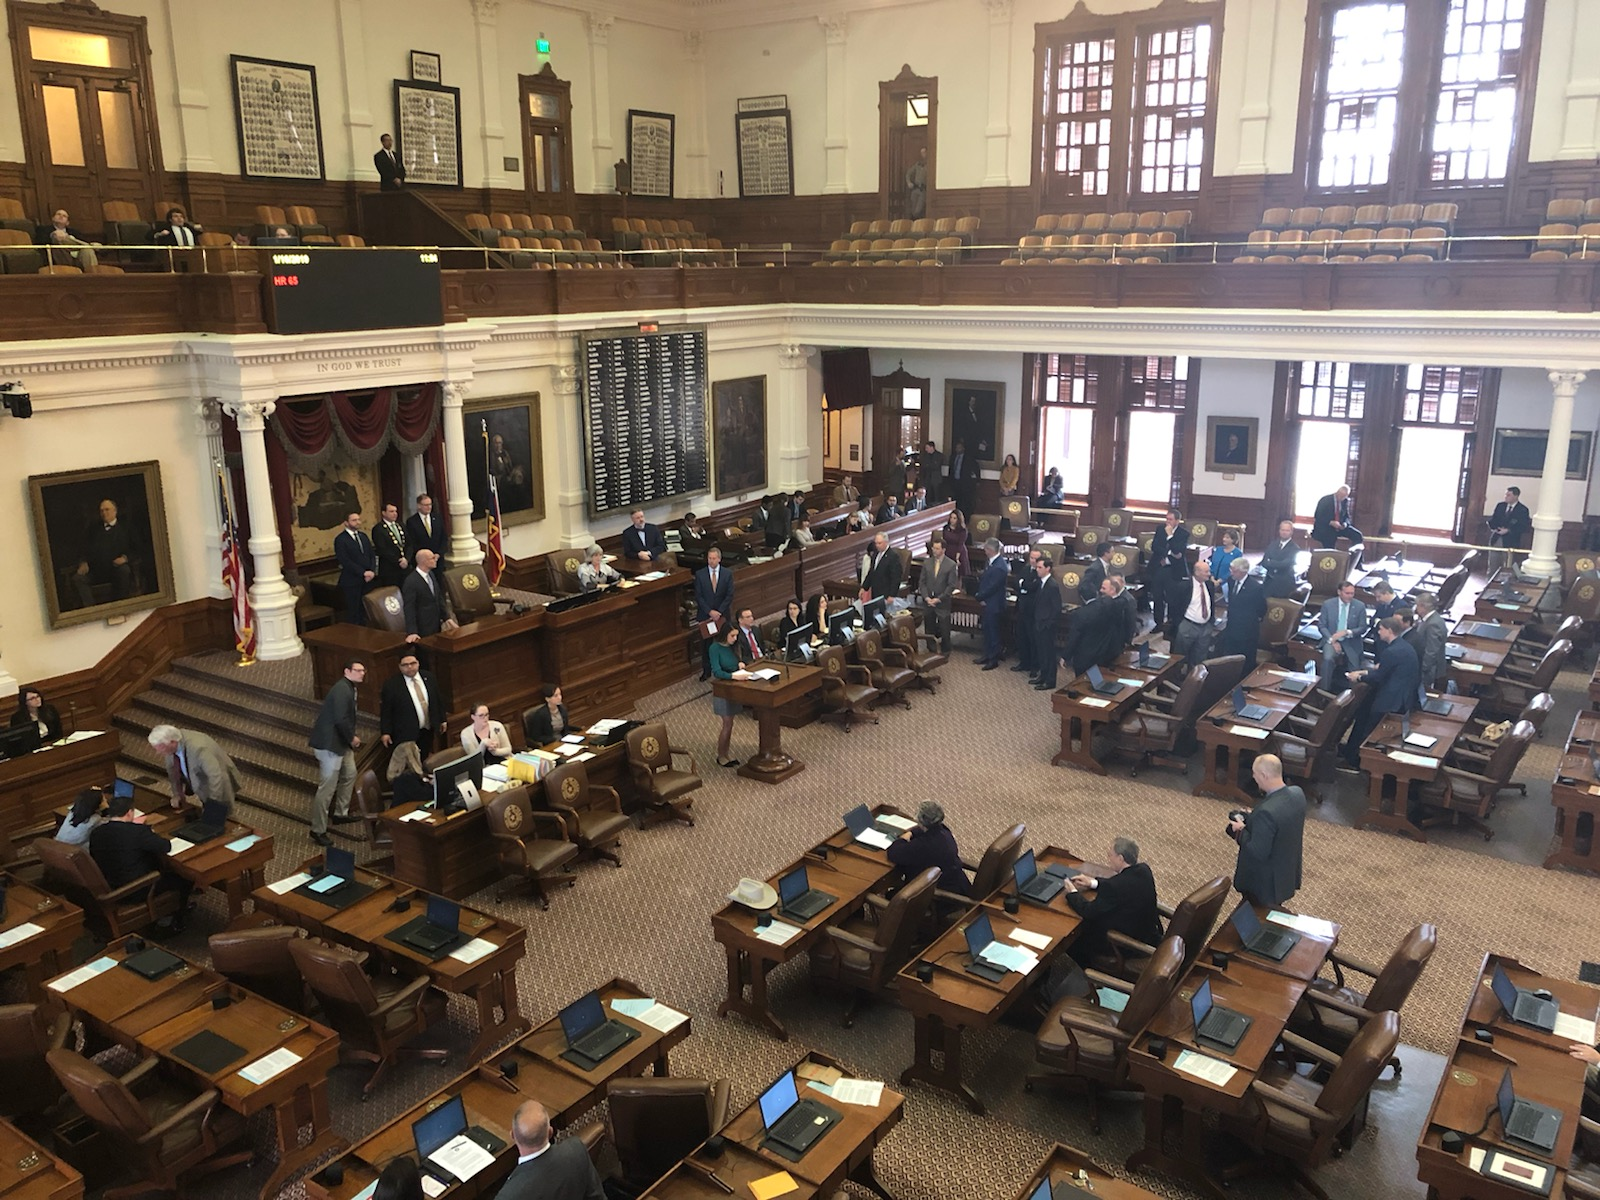 Texas House Representative Jim Murphy proposes a resolution to acknowledge the historic and economic links between Ireland and Texas on 16 January, 2019.